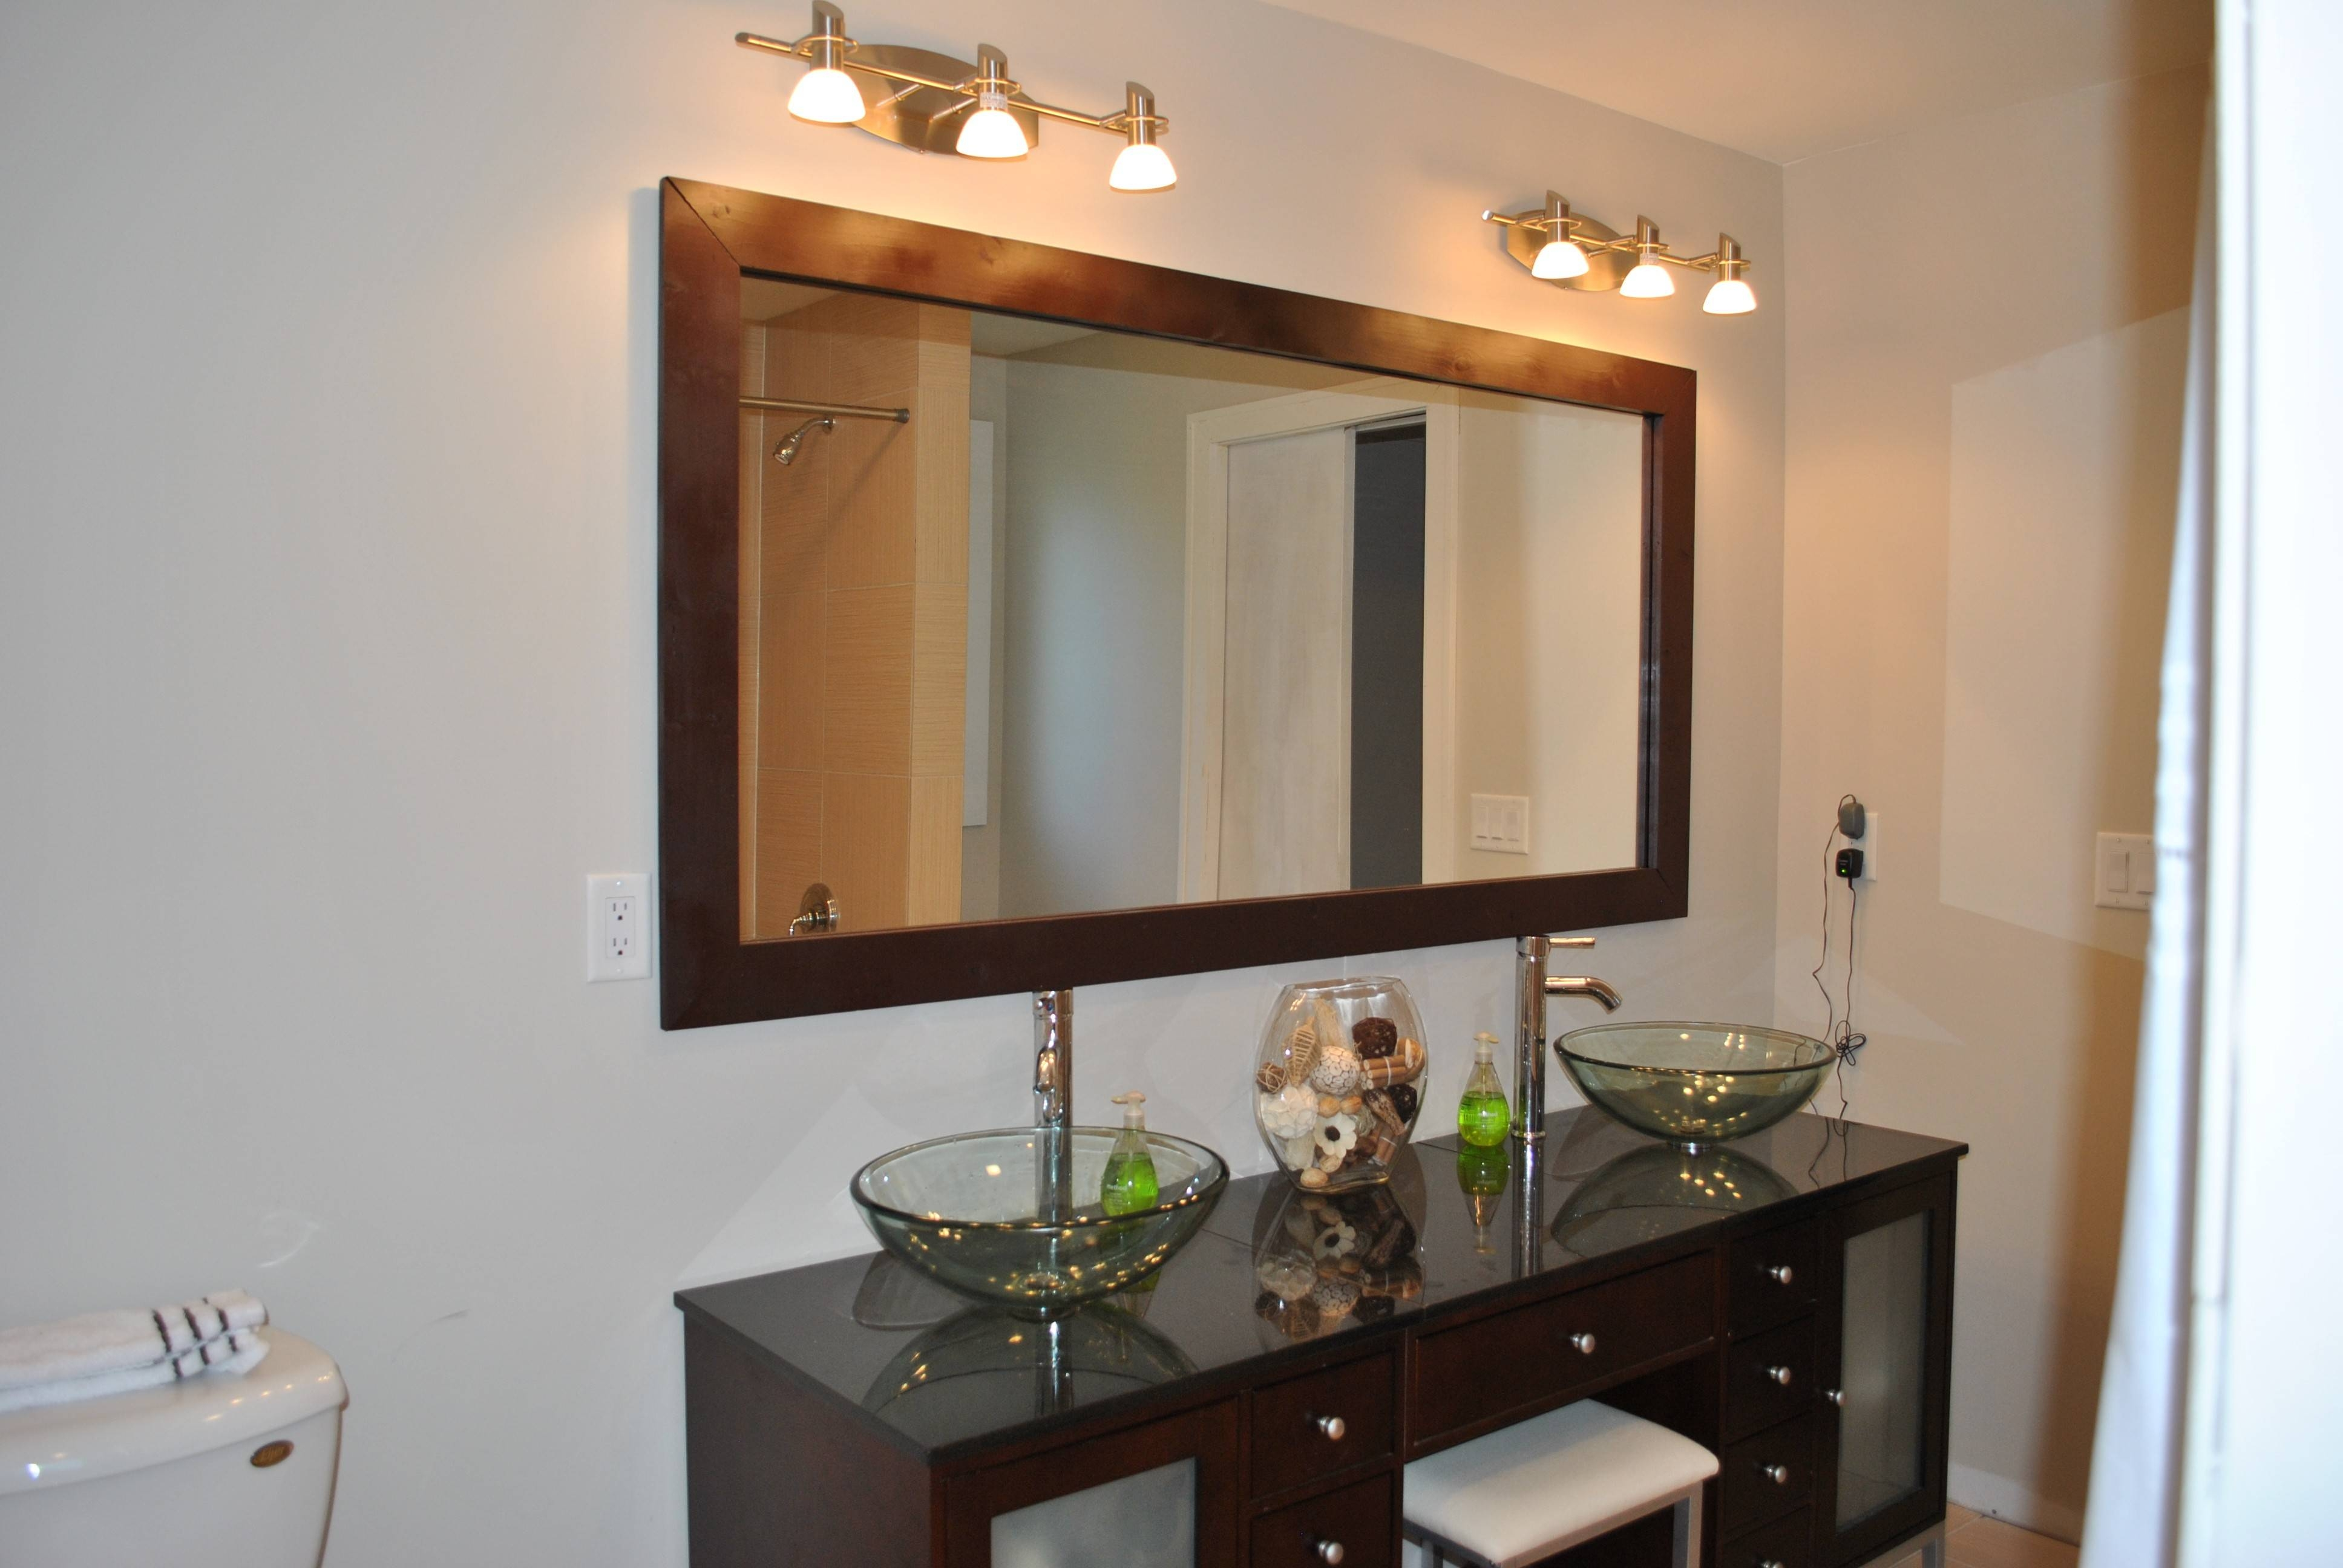 Bathroom Mirrors : Oak Framed Mirrors Bathroom Home Interior inside Rustic Oak Framed Mirrors (Image 7 of 15)